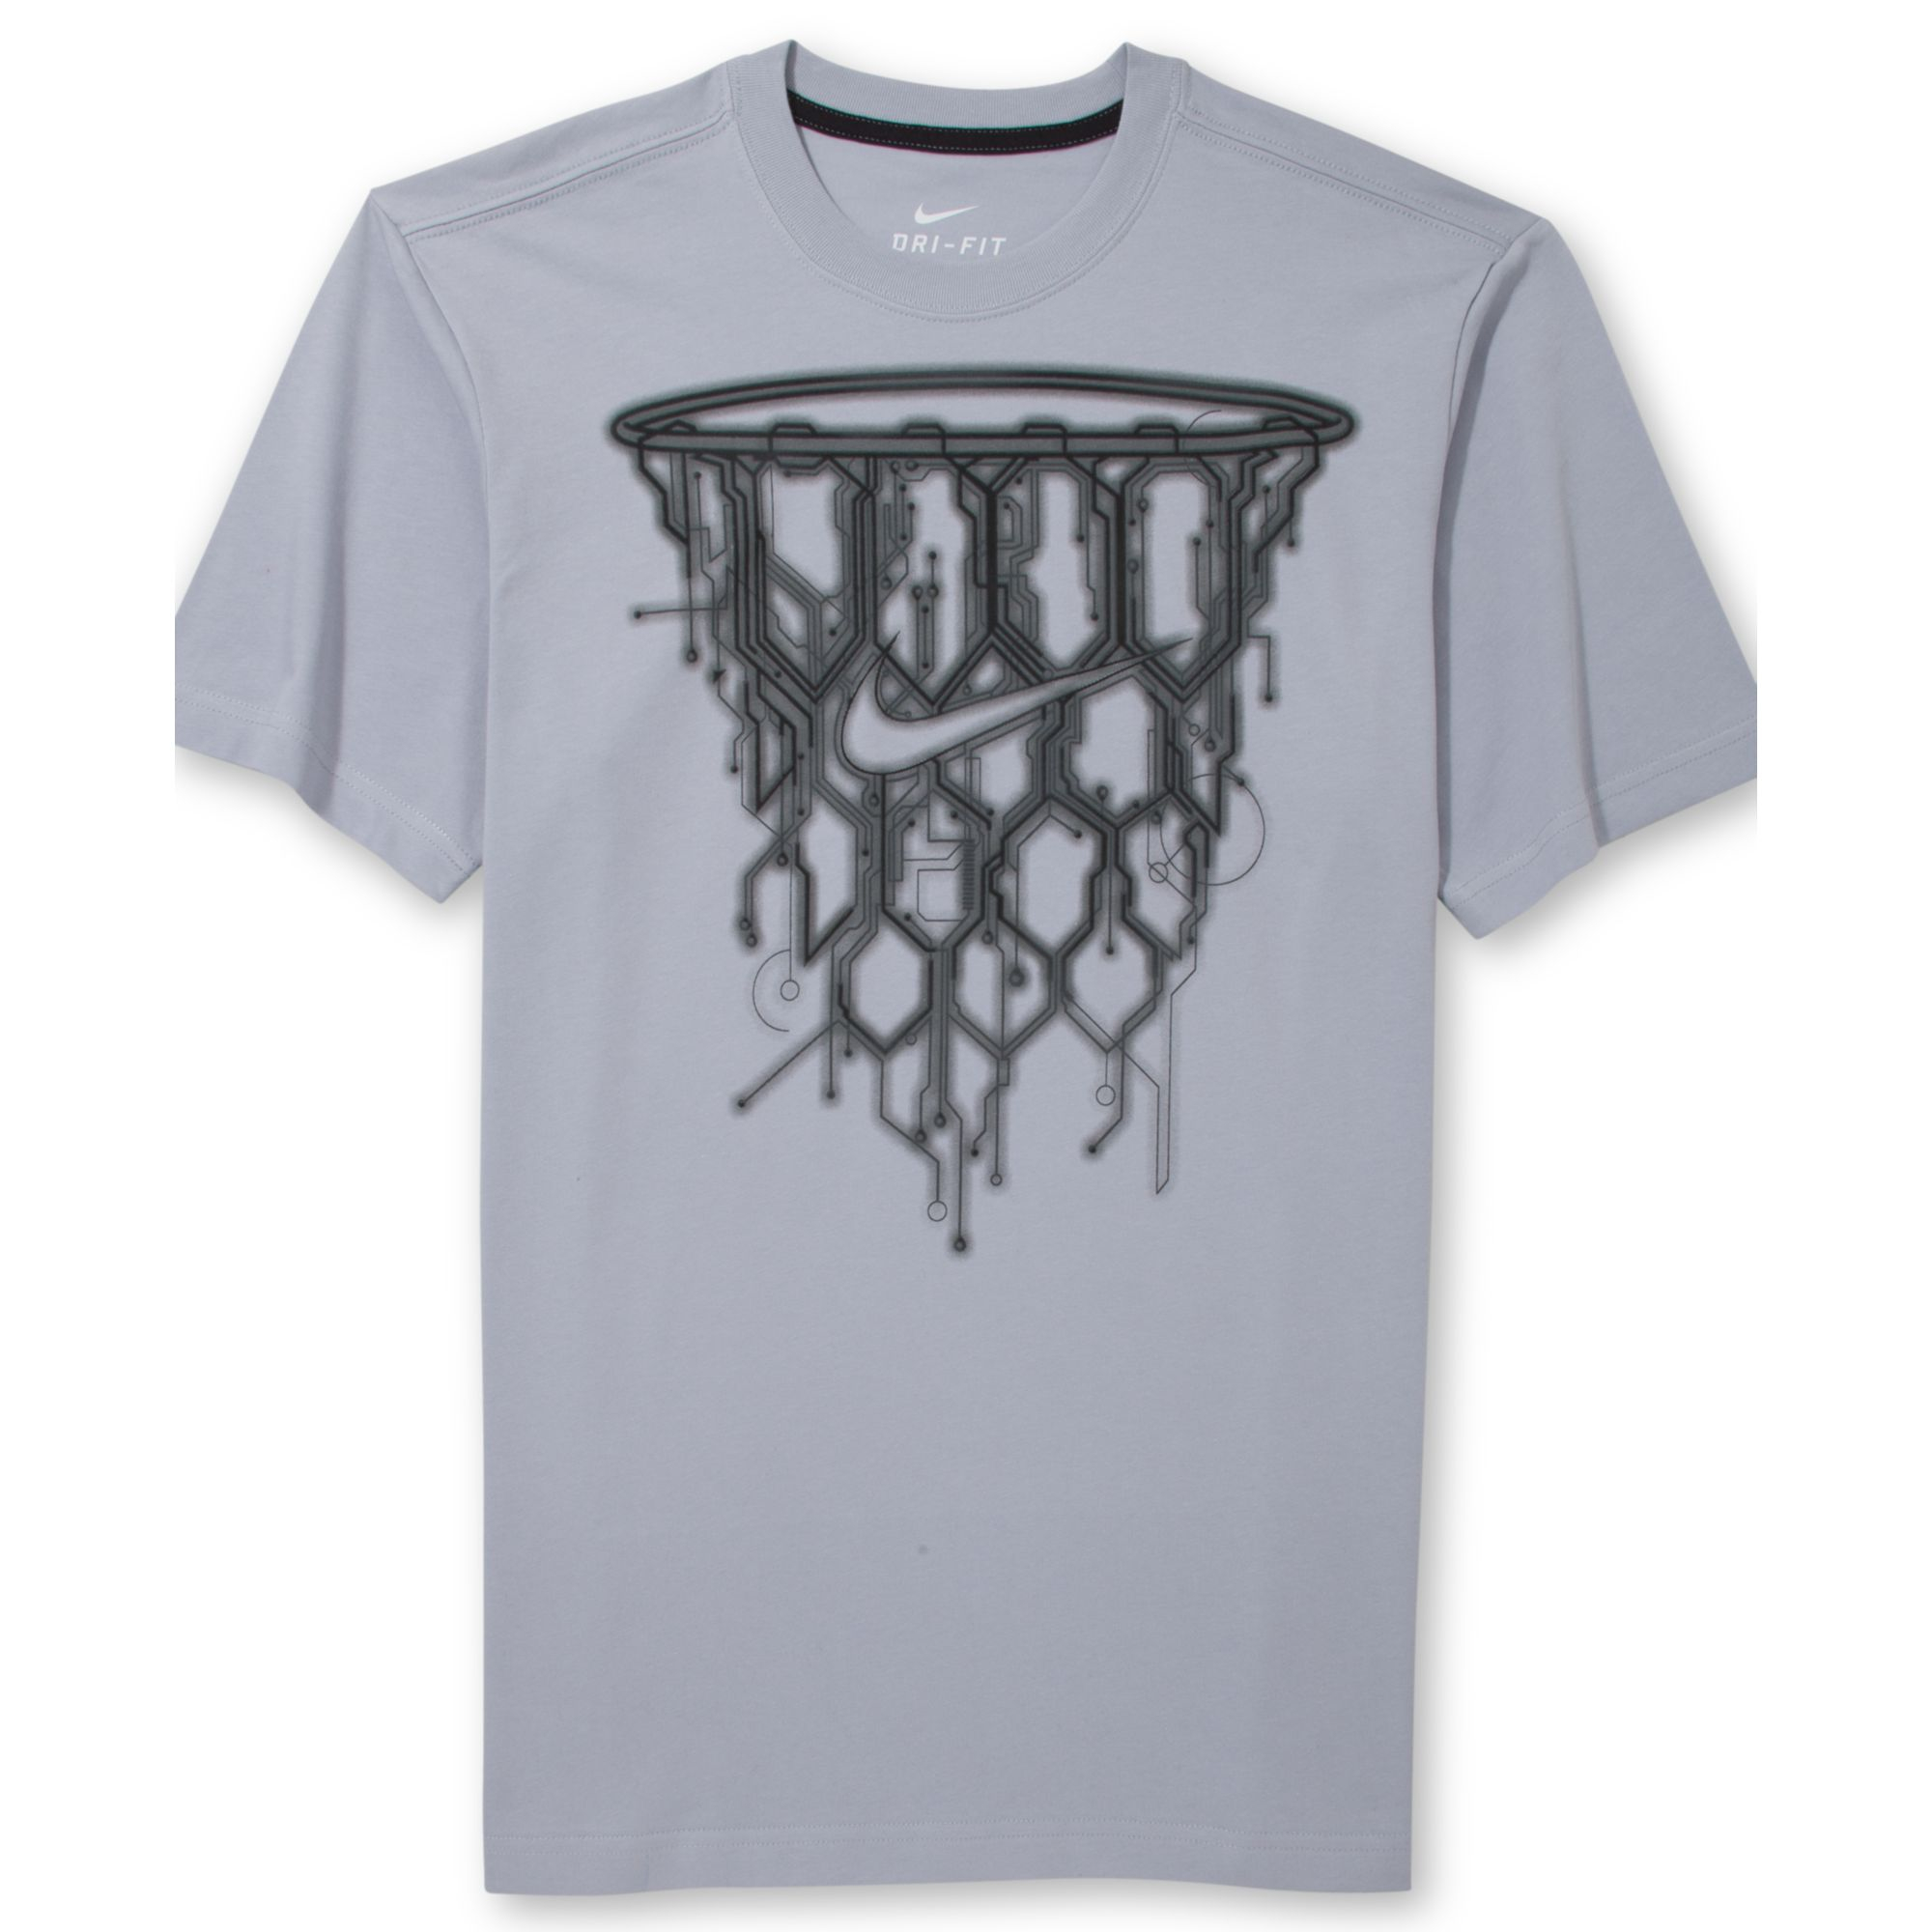 Lyst - Nike Basketball Net Graphic Tshirt in Gray for Men Nike Basketball Shirts